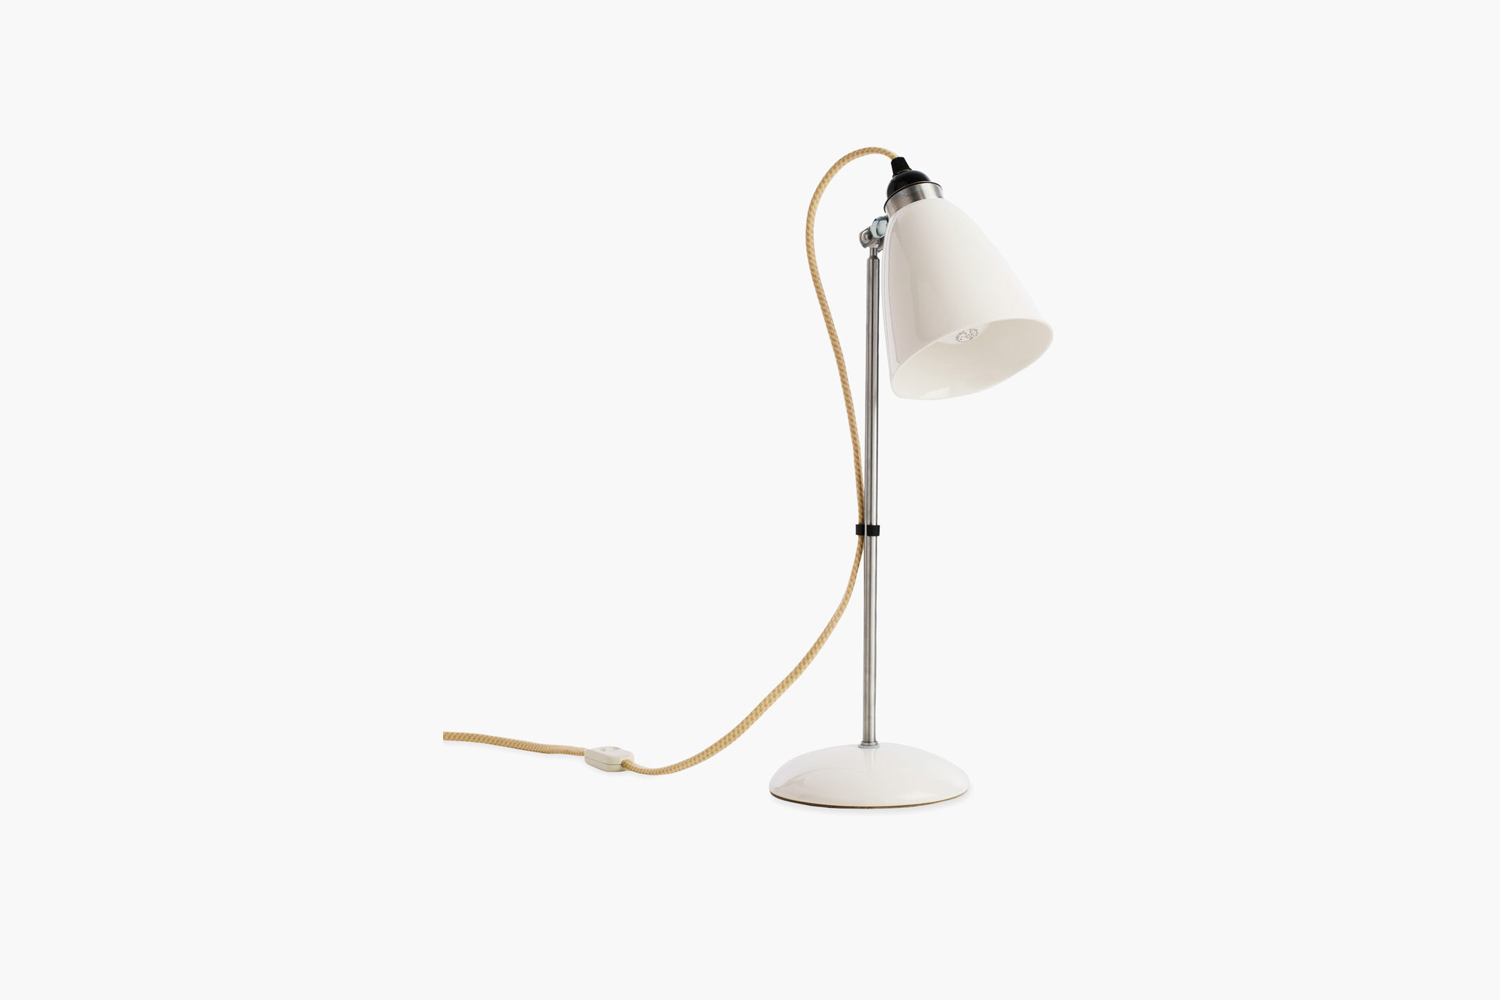 The Hector Medium Dome Table Lamp is $359 at Lekker Home.